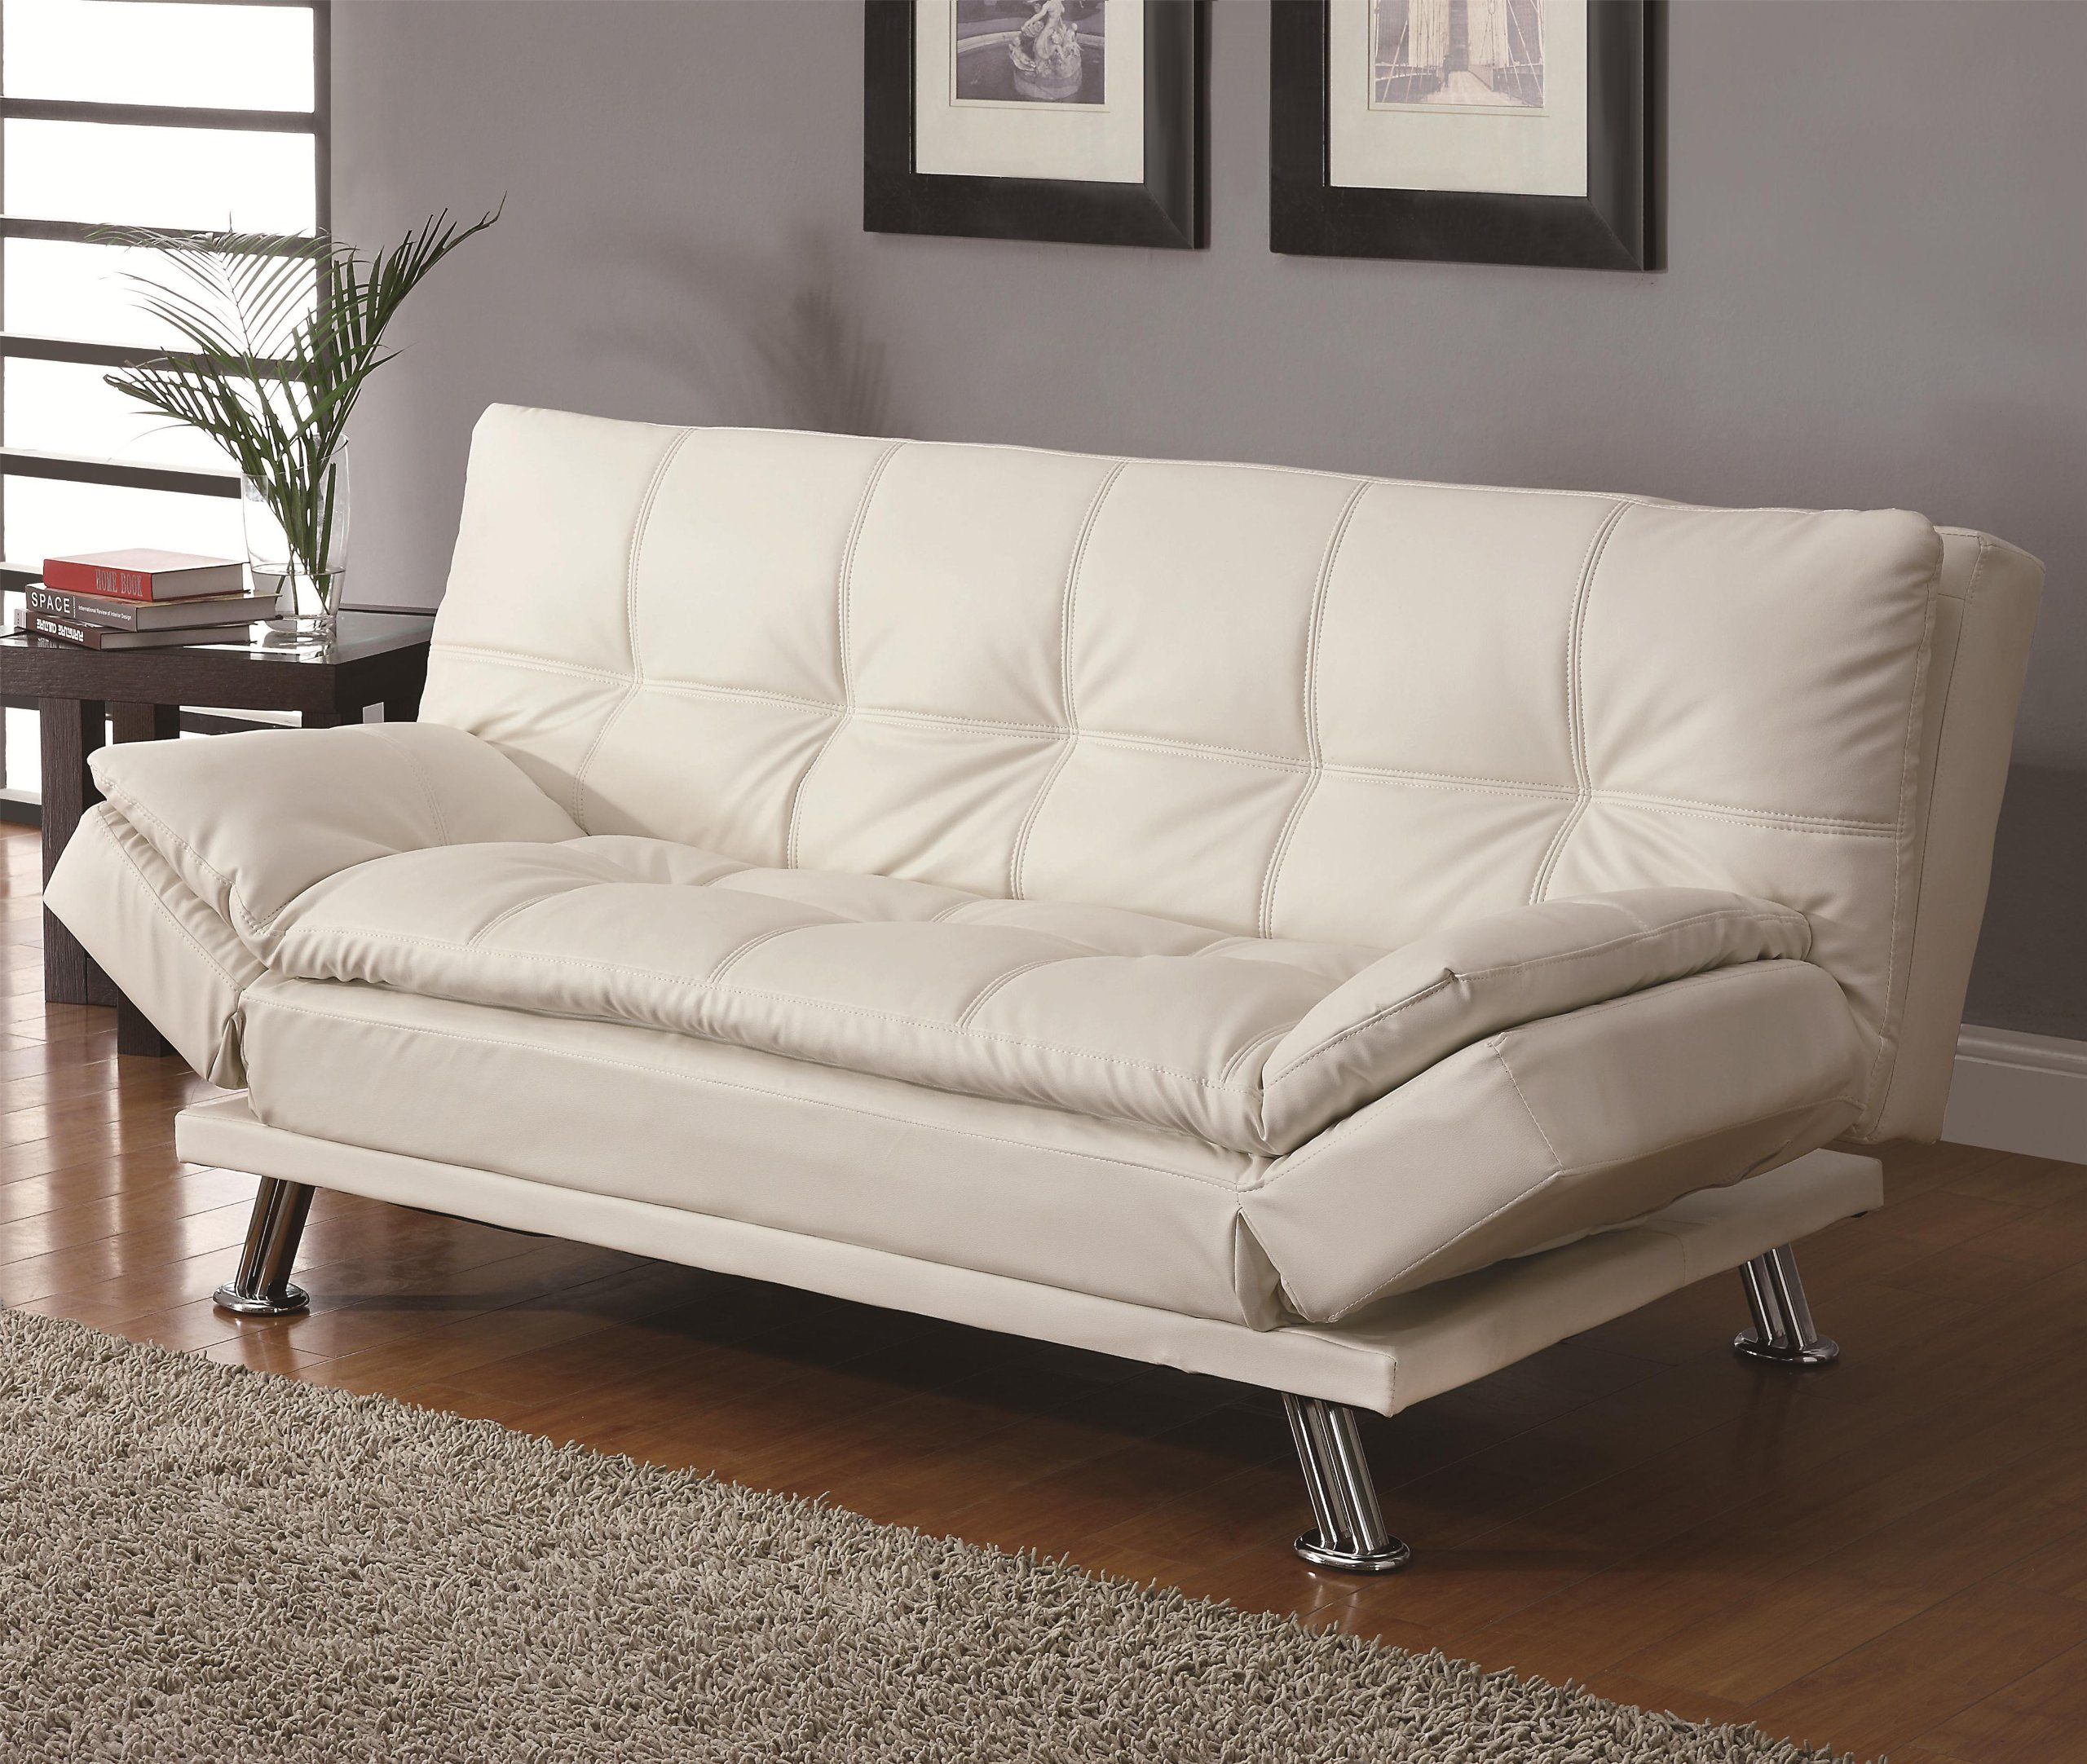 Amazon - Contemporary White Adjustable Futon Sofa Bed - Leather Futon  Sofa Bed